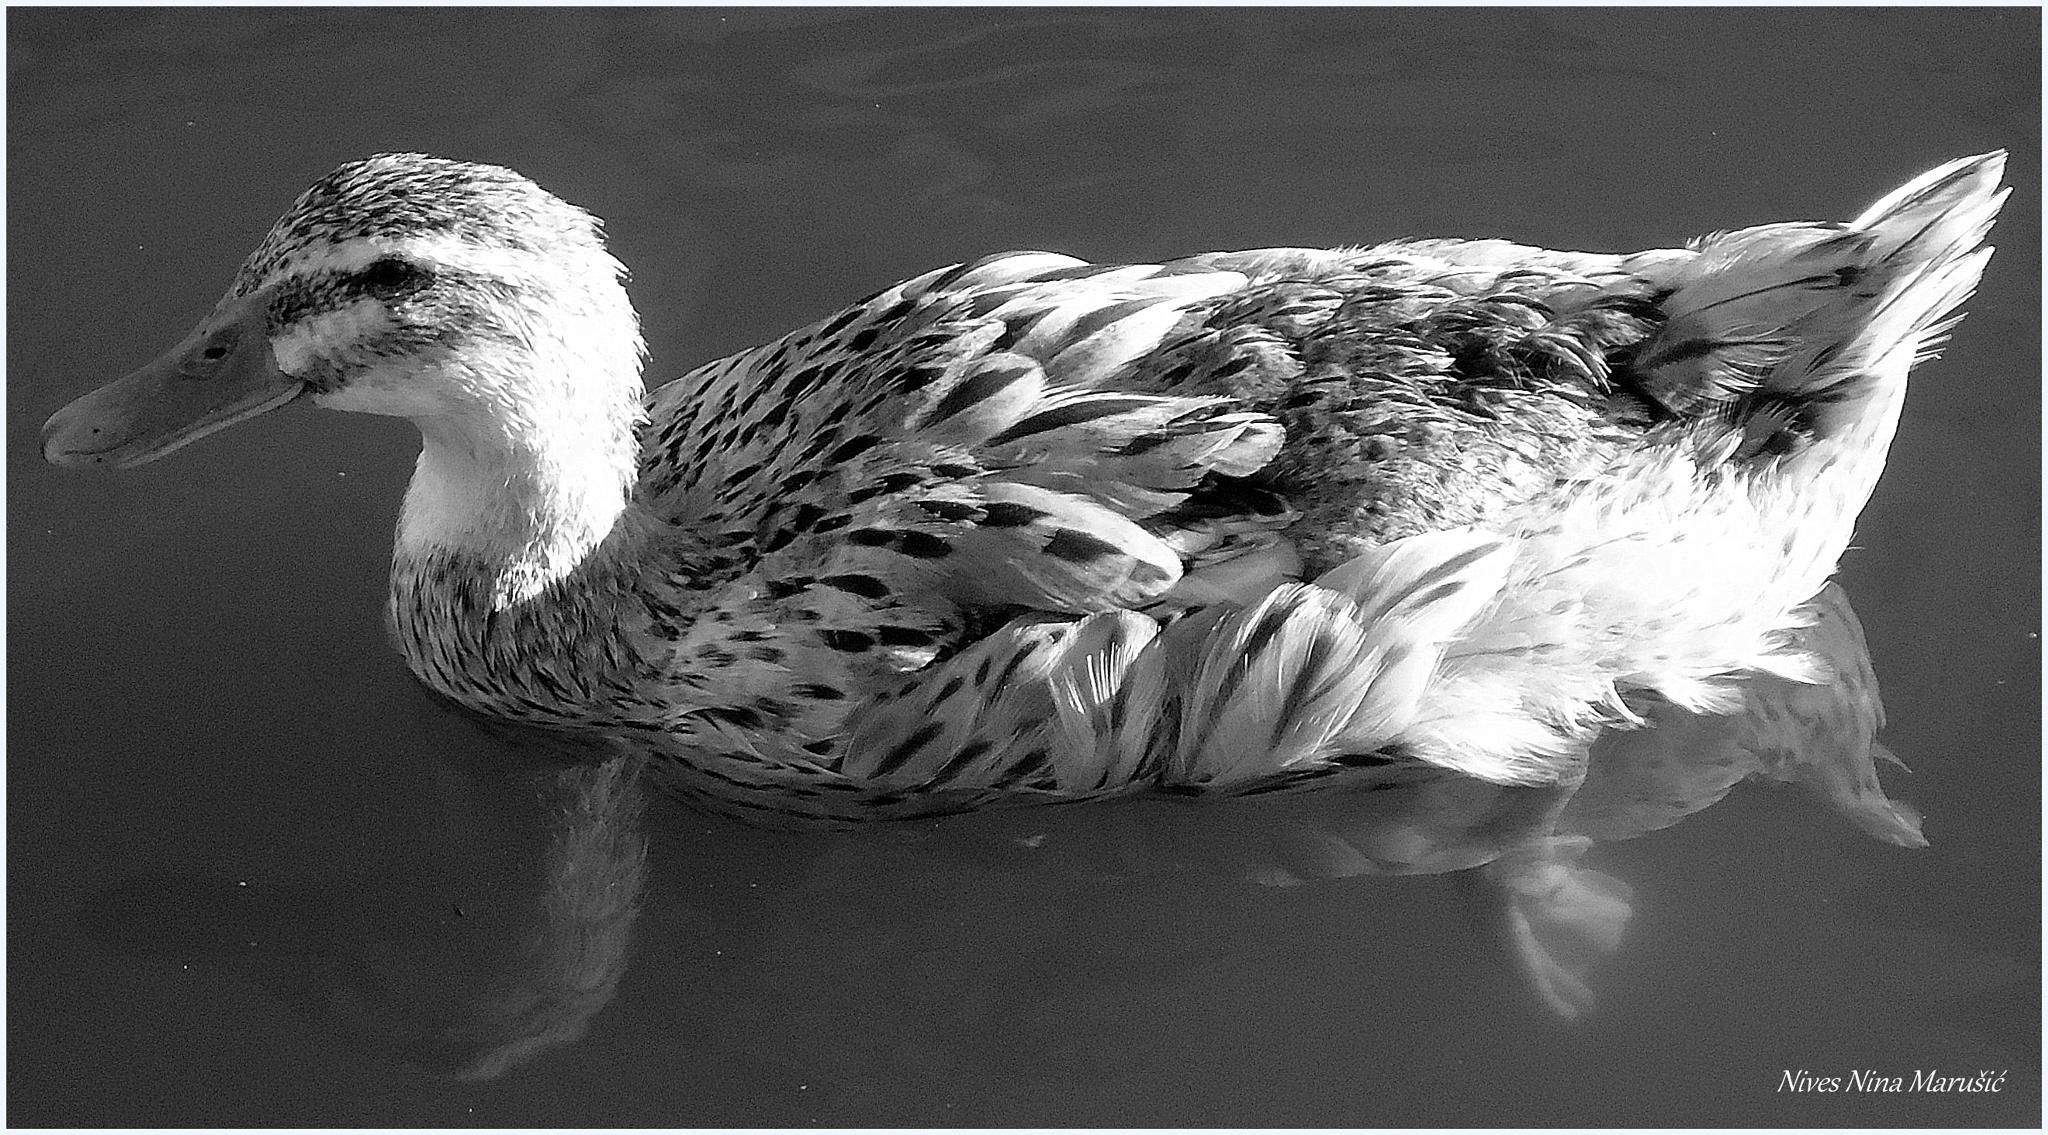 duck by nives.n.marusic